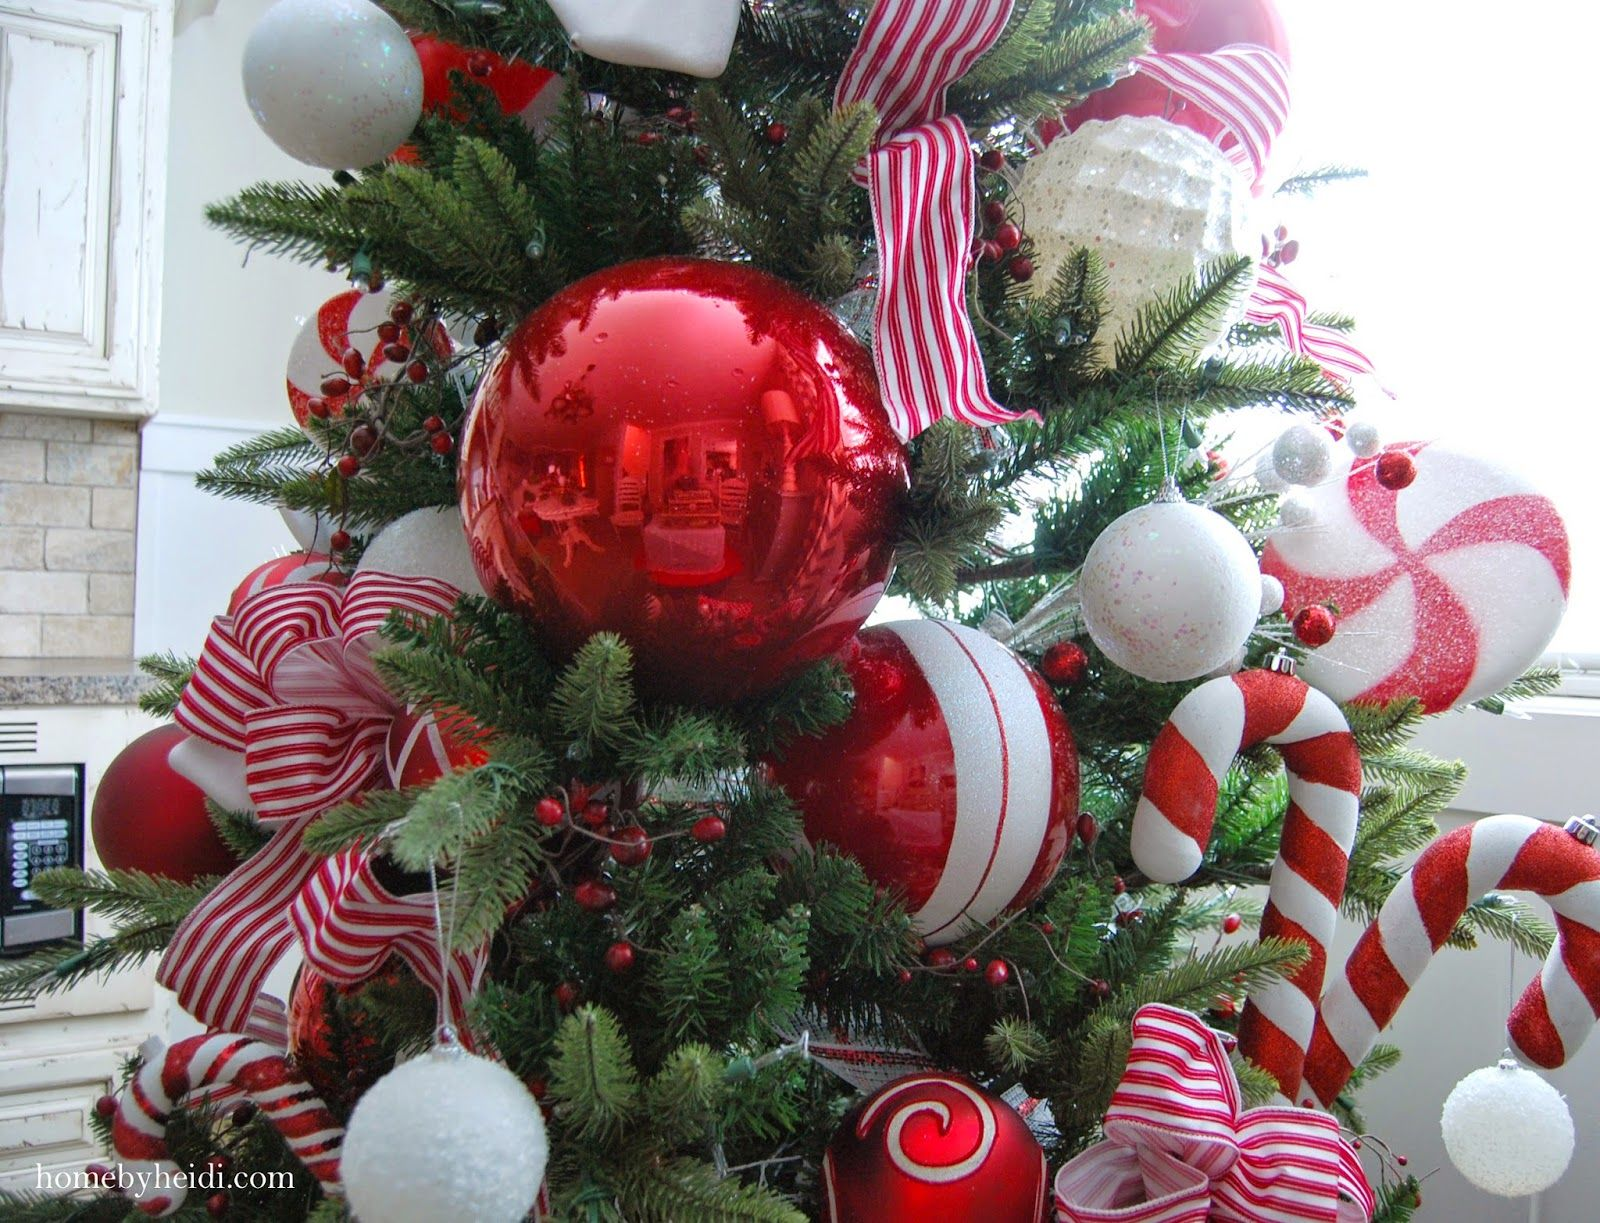 Candy Cane Christmas Tree Decorations For Years My Kiddos Have Been Begging Me To Set Up A Second Tree